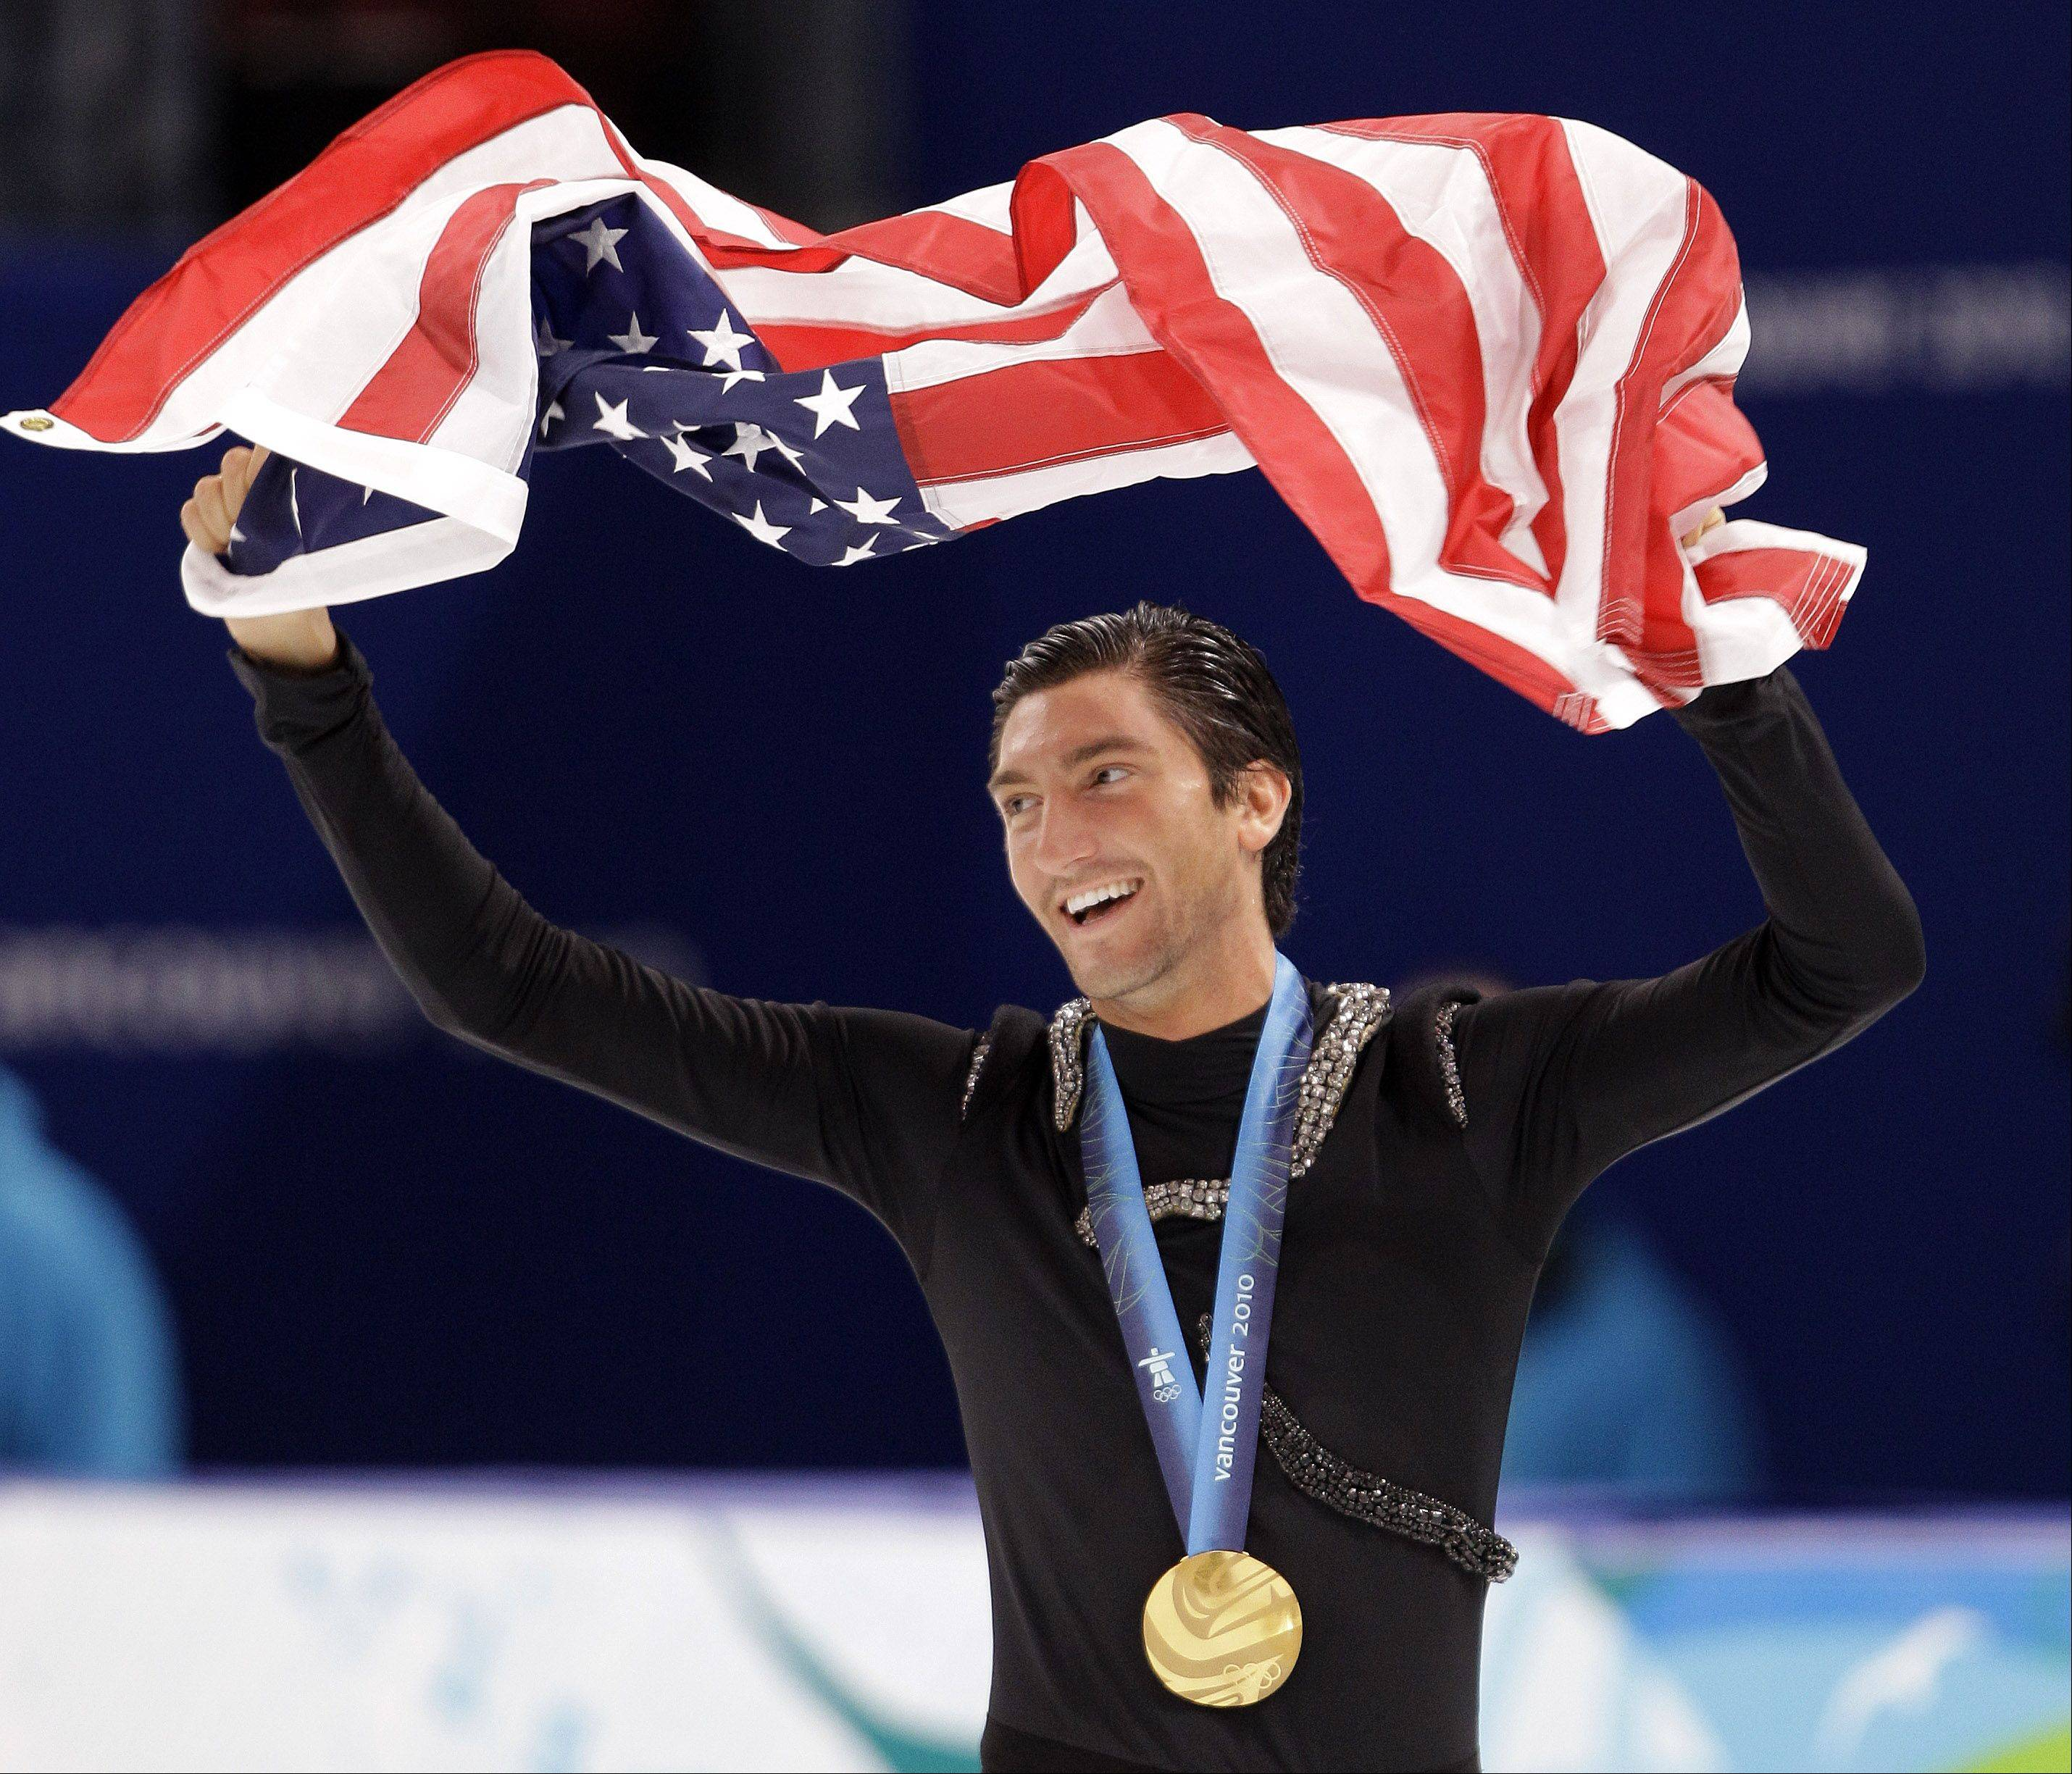 Evan Lysacek won't return to the Olympics this year, but you can skate where the Naperville native trained on his way to the gold medal.